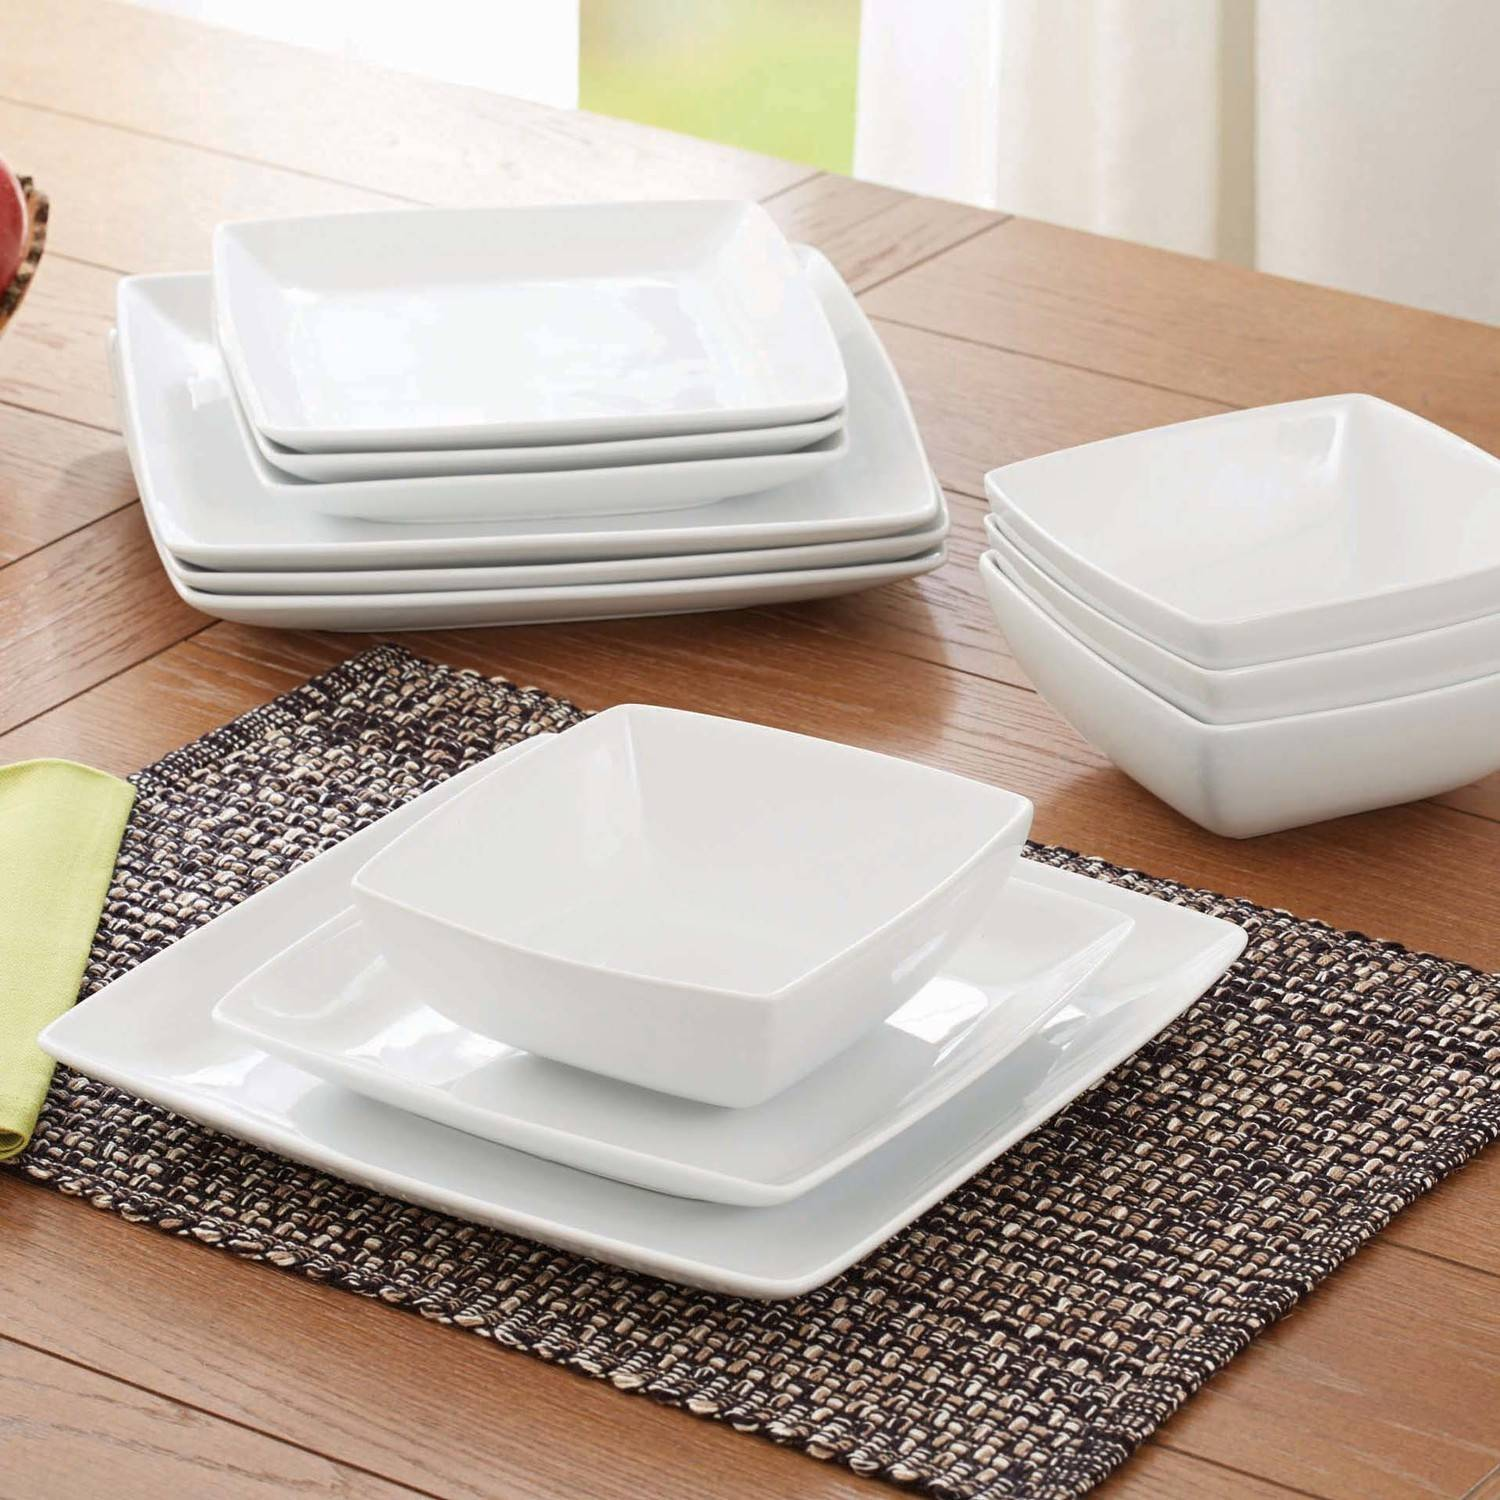 Better Homes and Gardens Coupe Square 12-Piece Dinnerware Set White & Square Dinnerware Sets